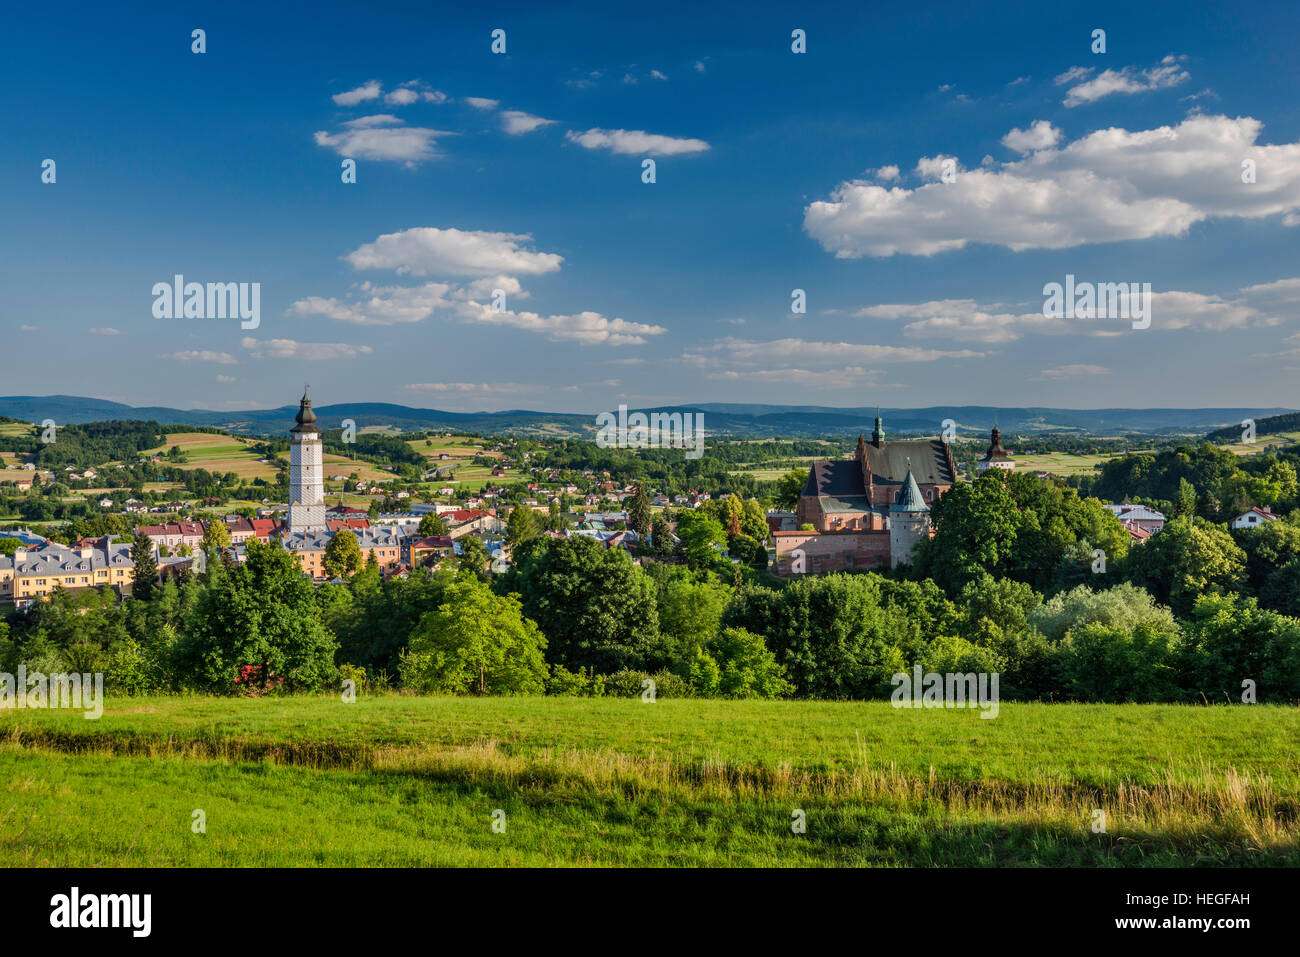 View of town of Biecz in Ropa River Valley, Malopolska, Poland - Stock Image